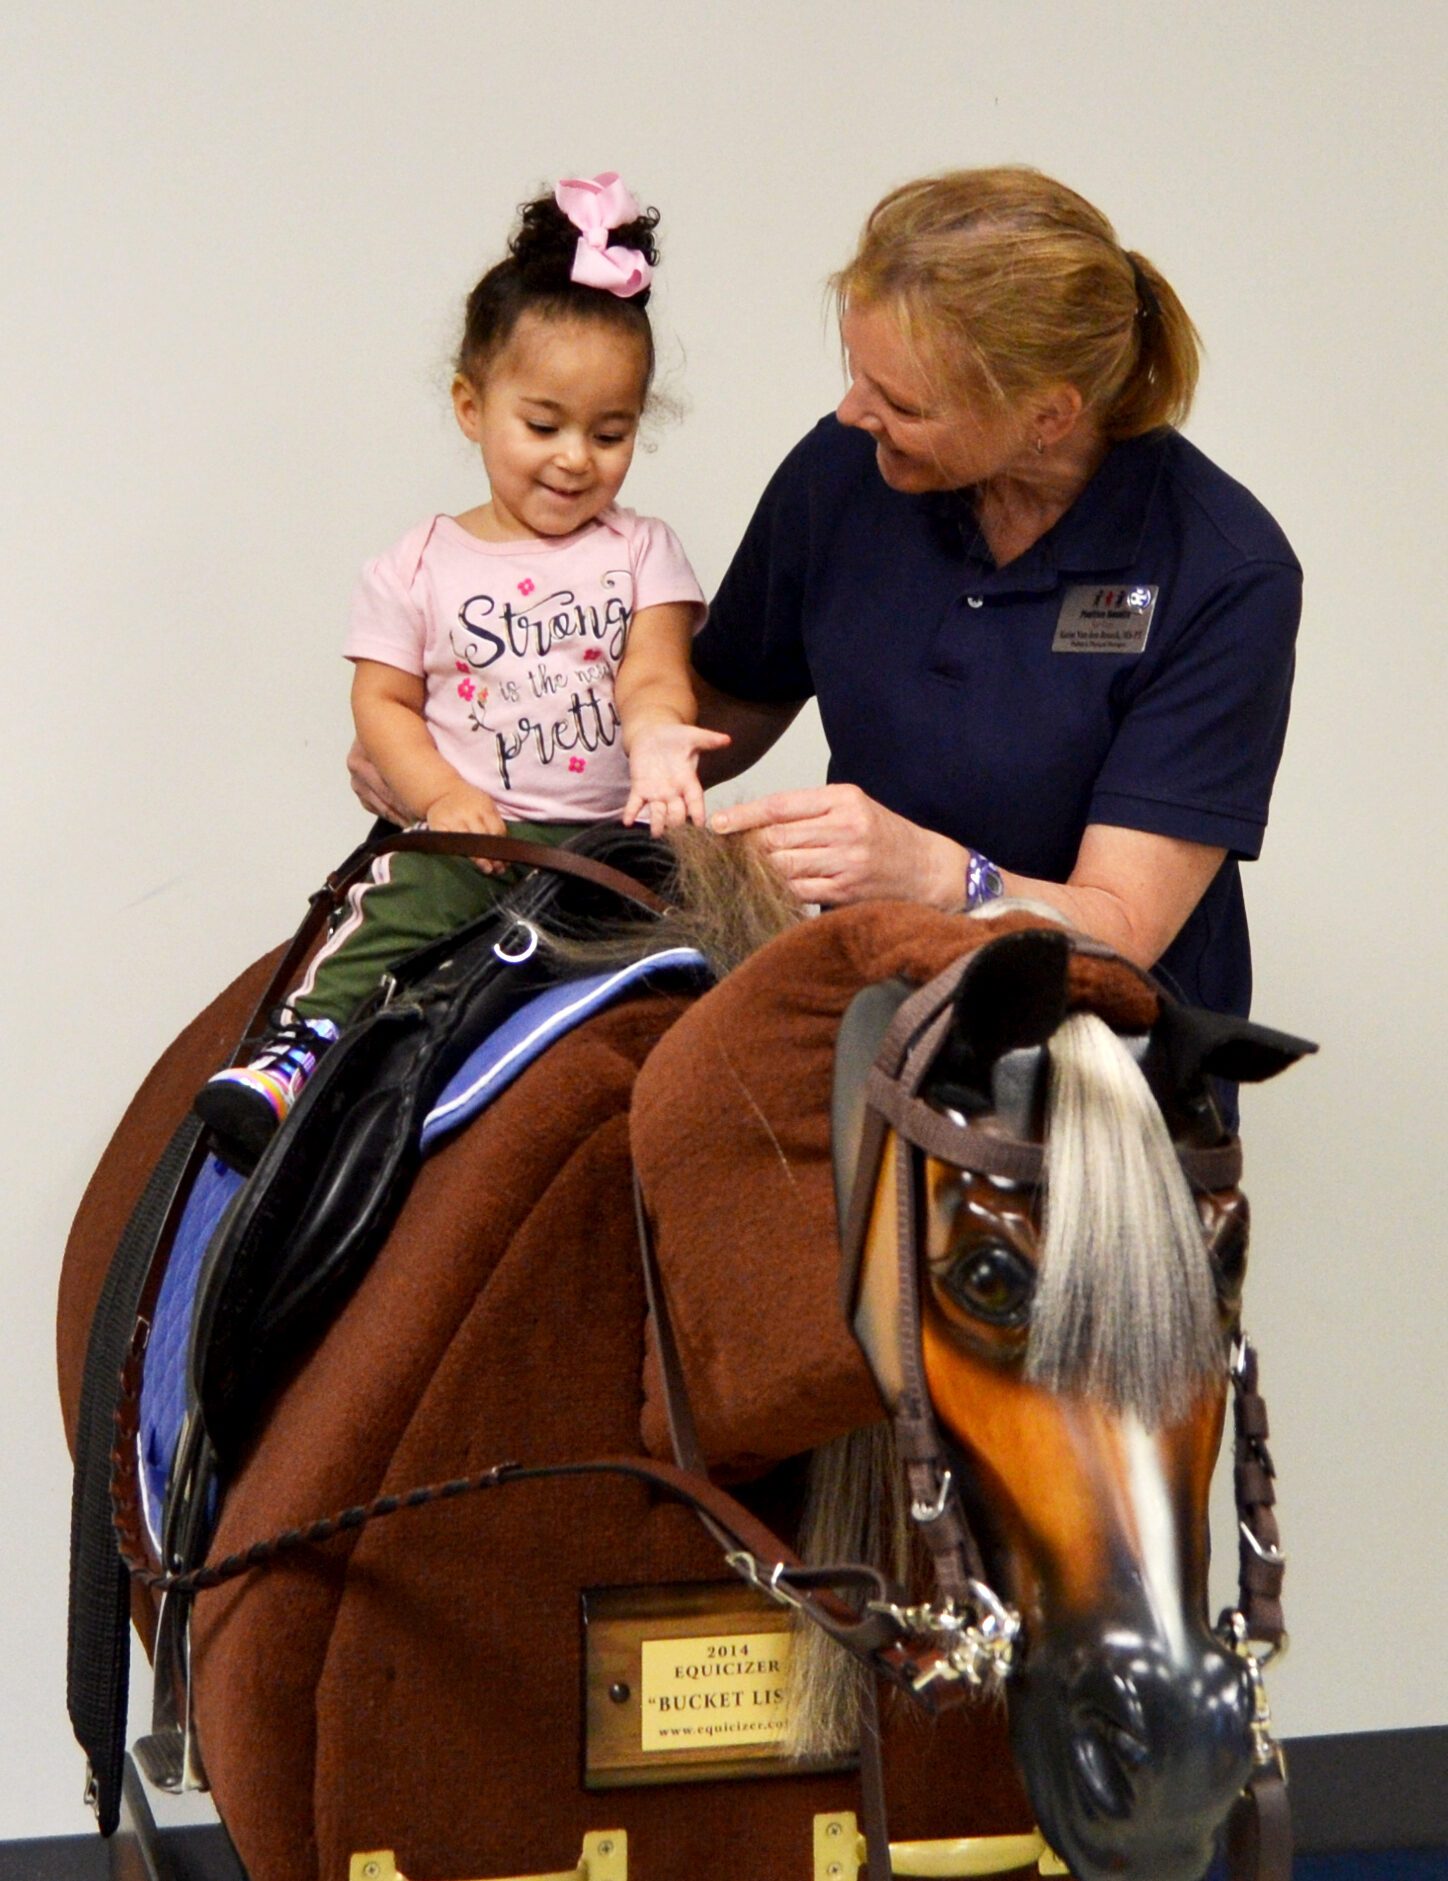 Child on therapies horse